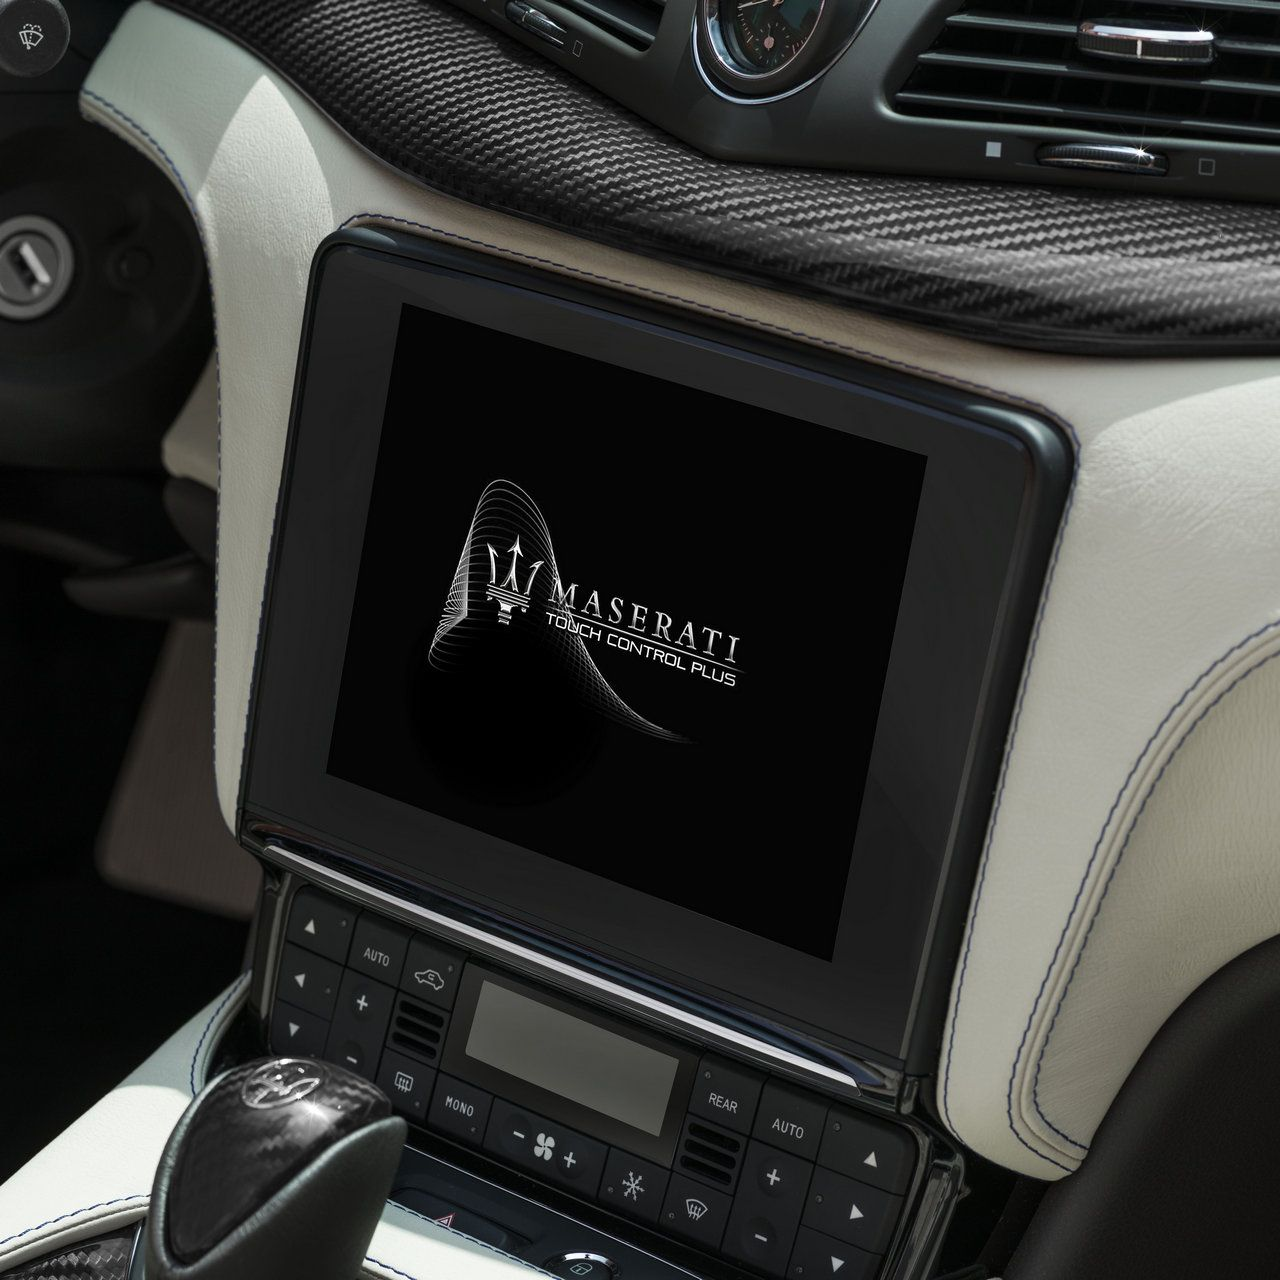 Maserati GranCabrio - luxury interiors' details and touchscreen display